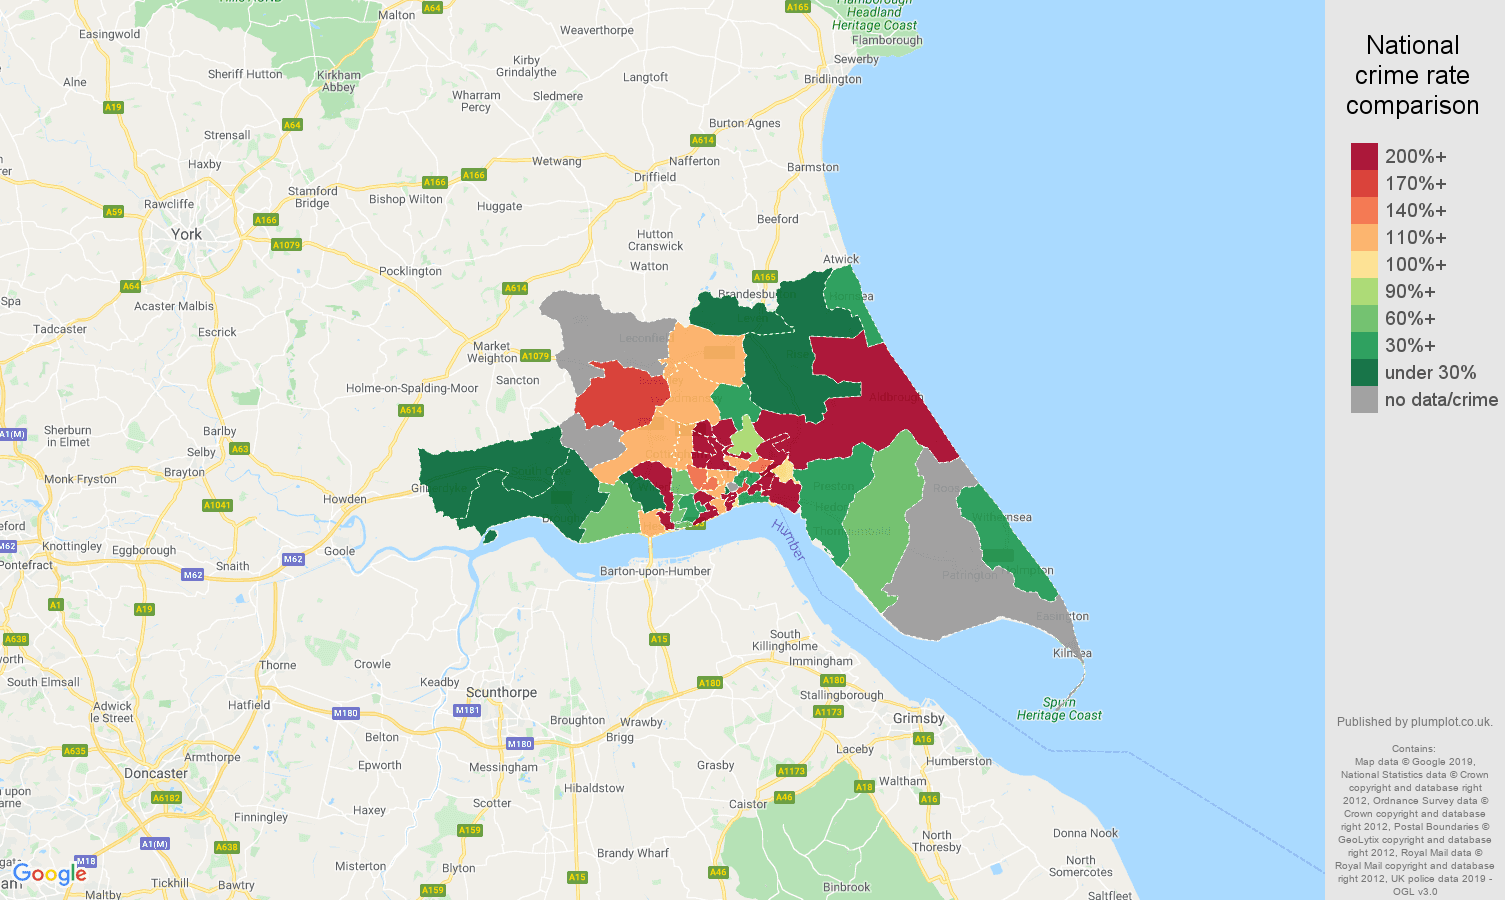 Hull shoplifting crime rate comparison map